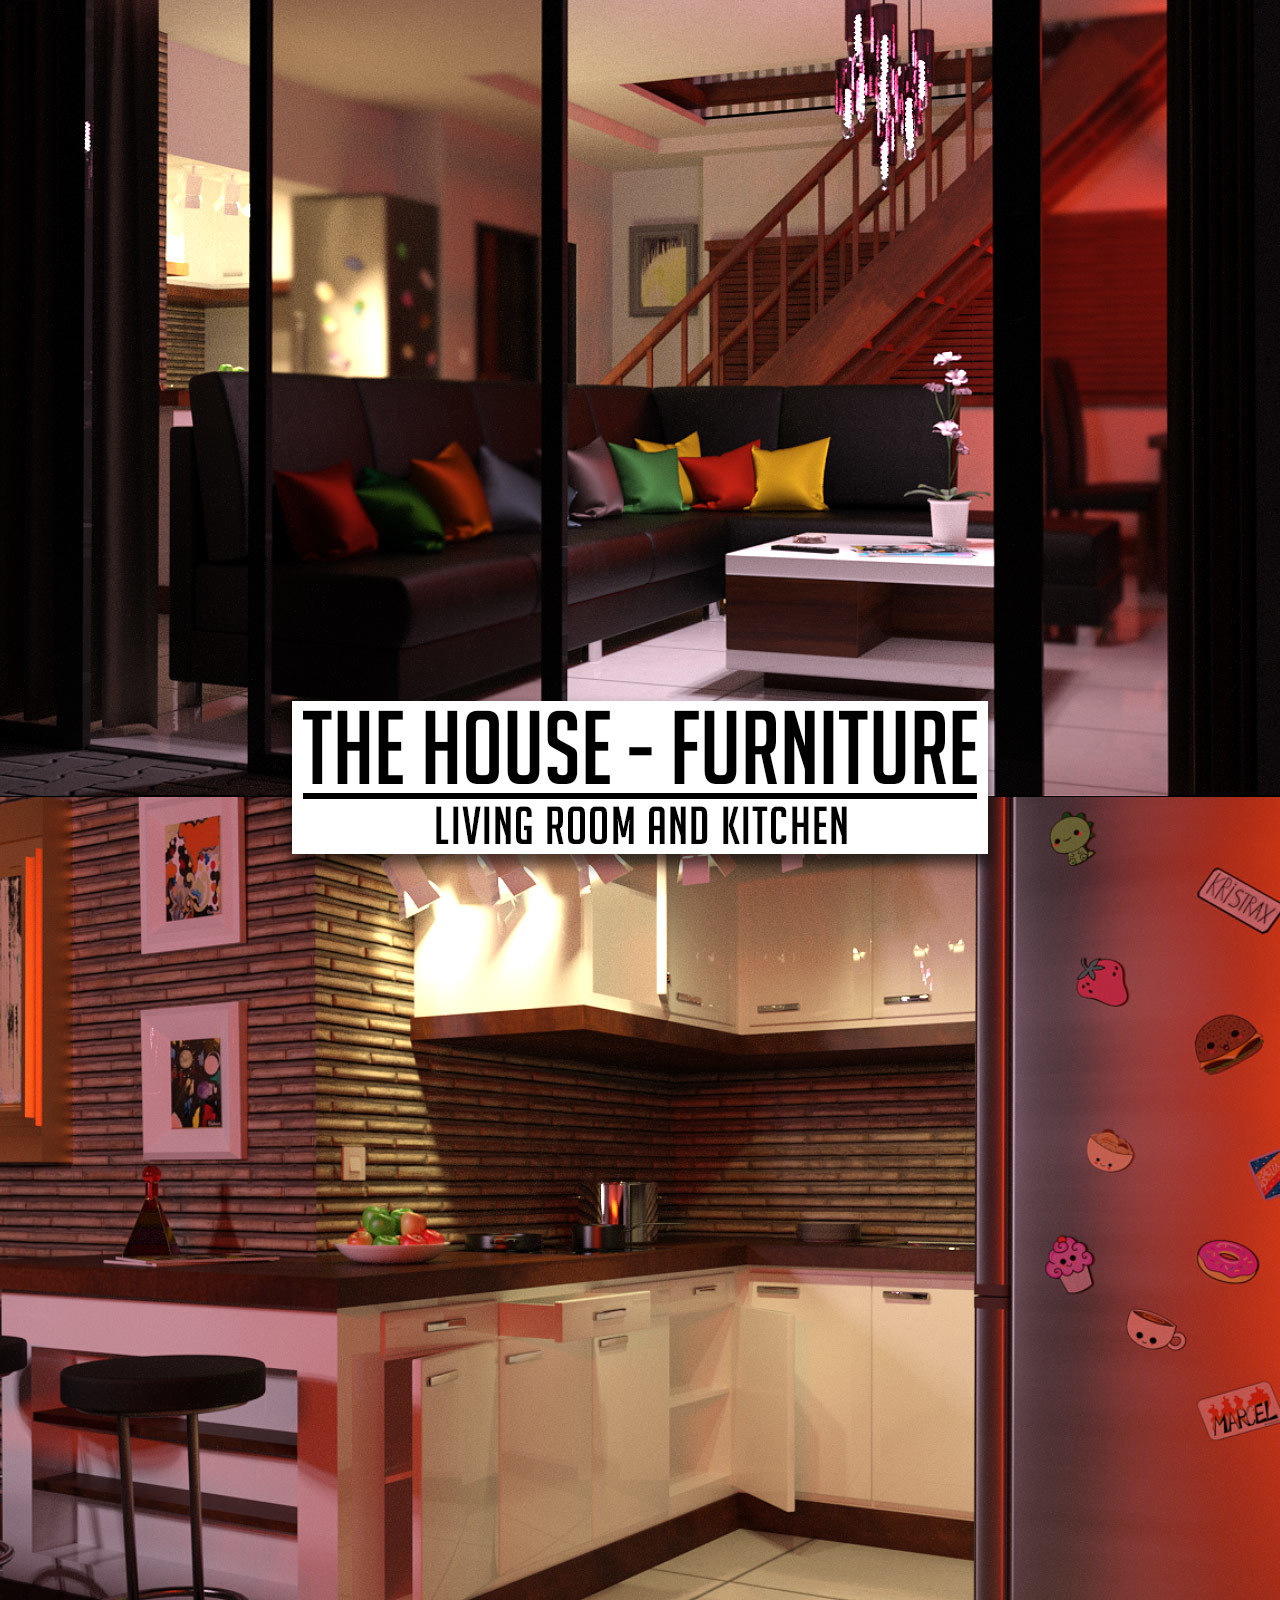 The House Furniture -Living Room and Kitchen by powerage